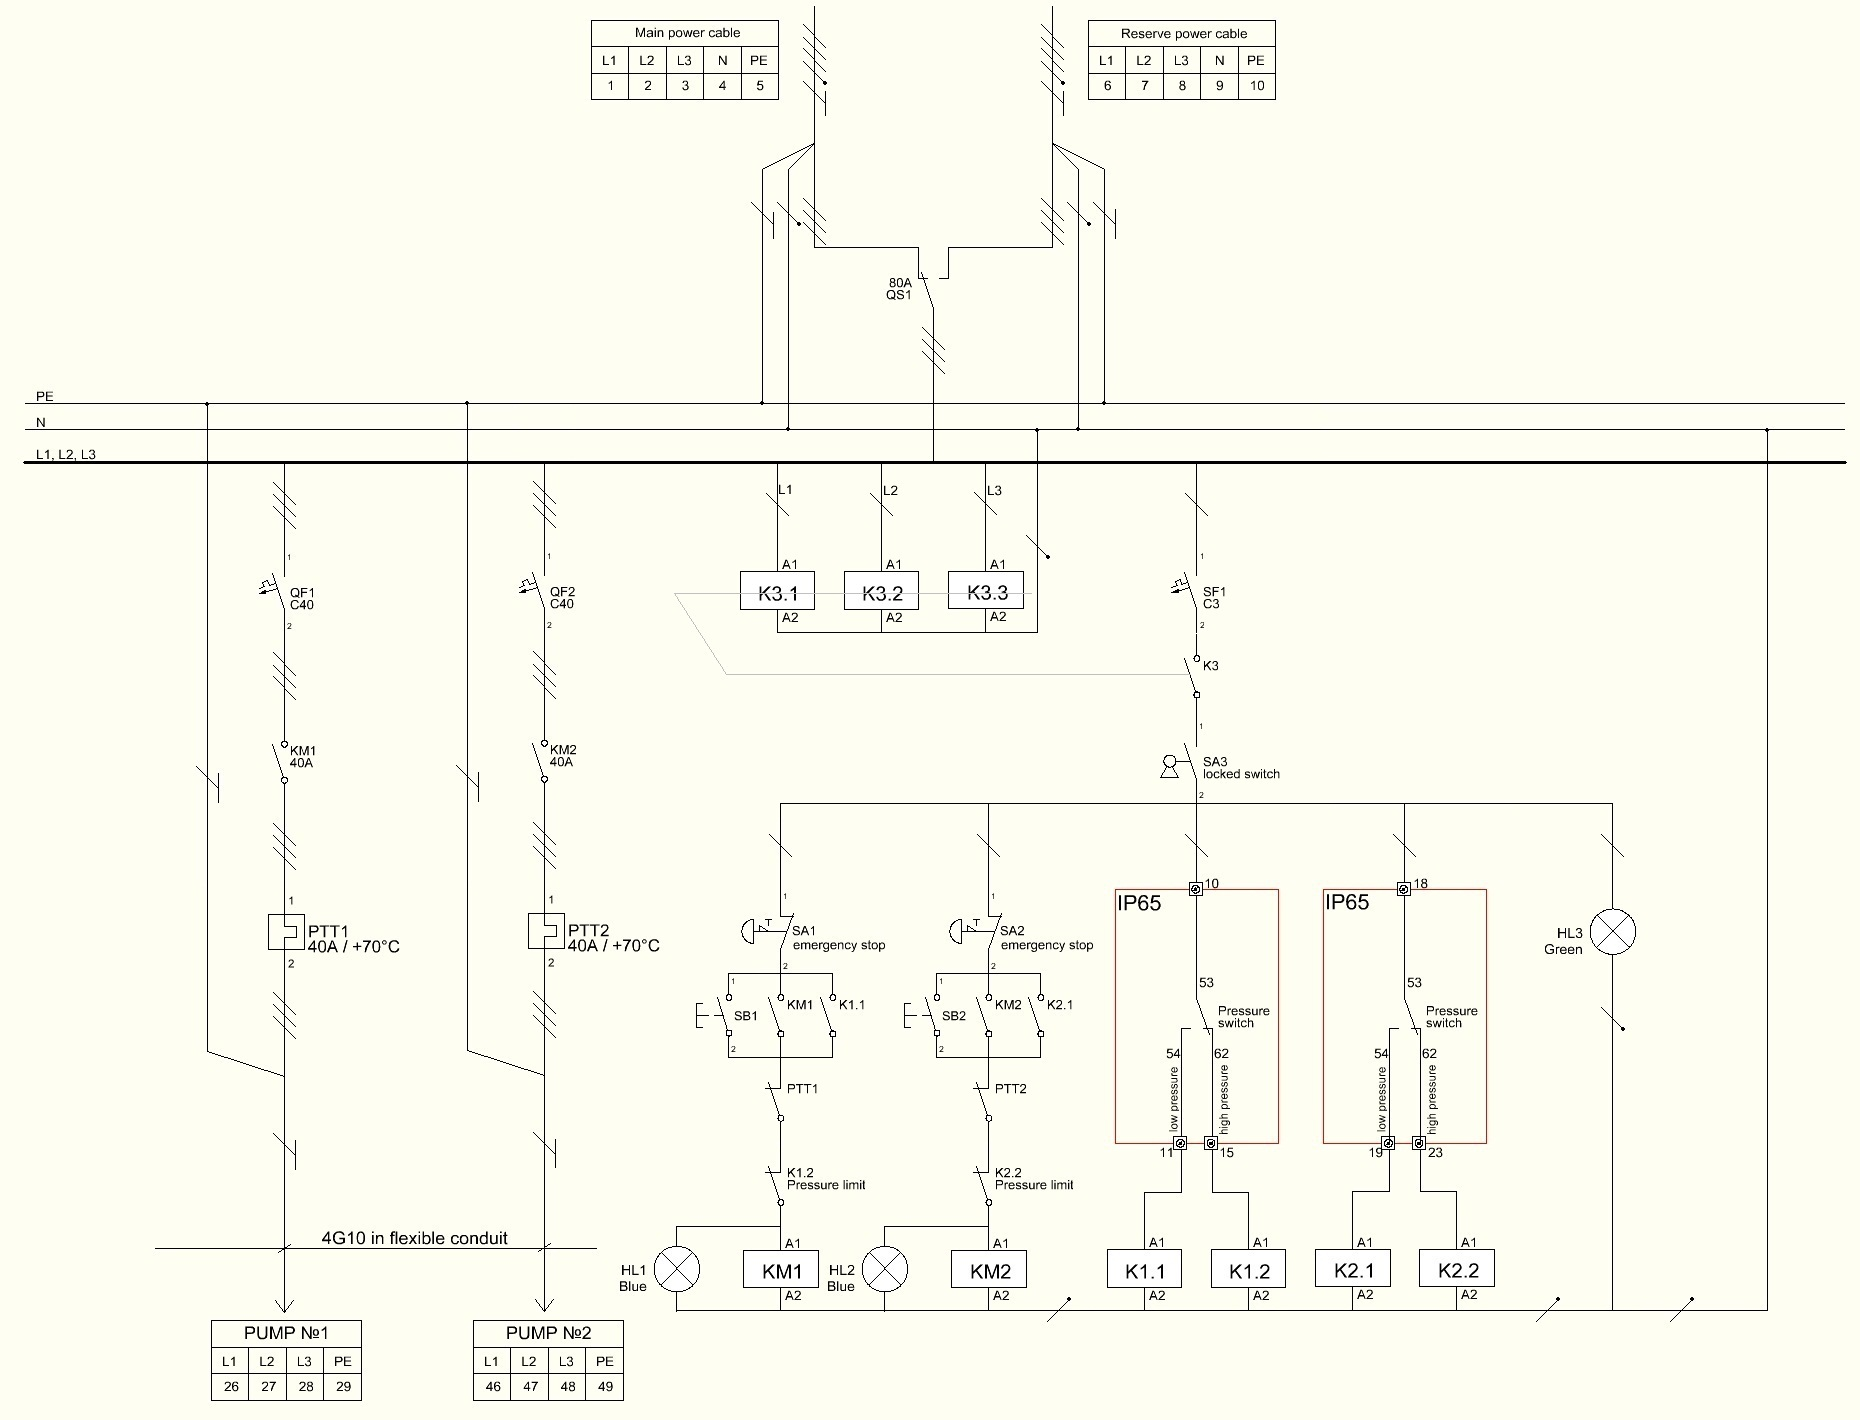 wye delta motor starter wiring diagram glands in the neck and throat 3 phase for controls get